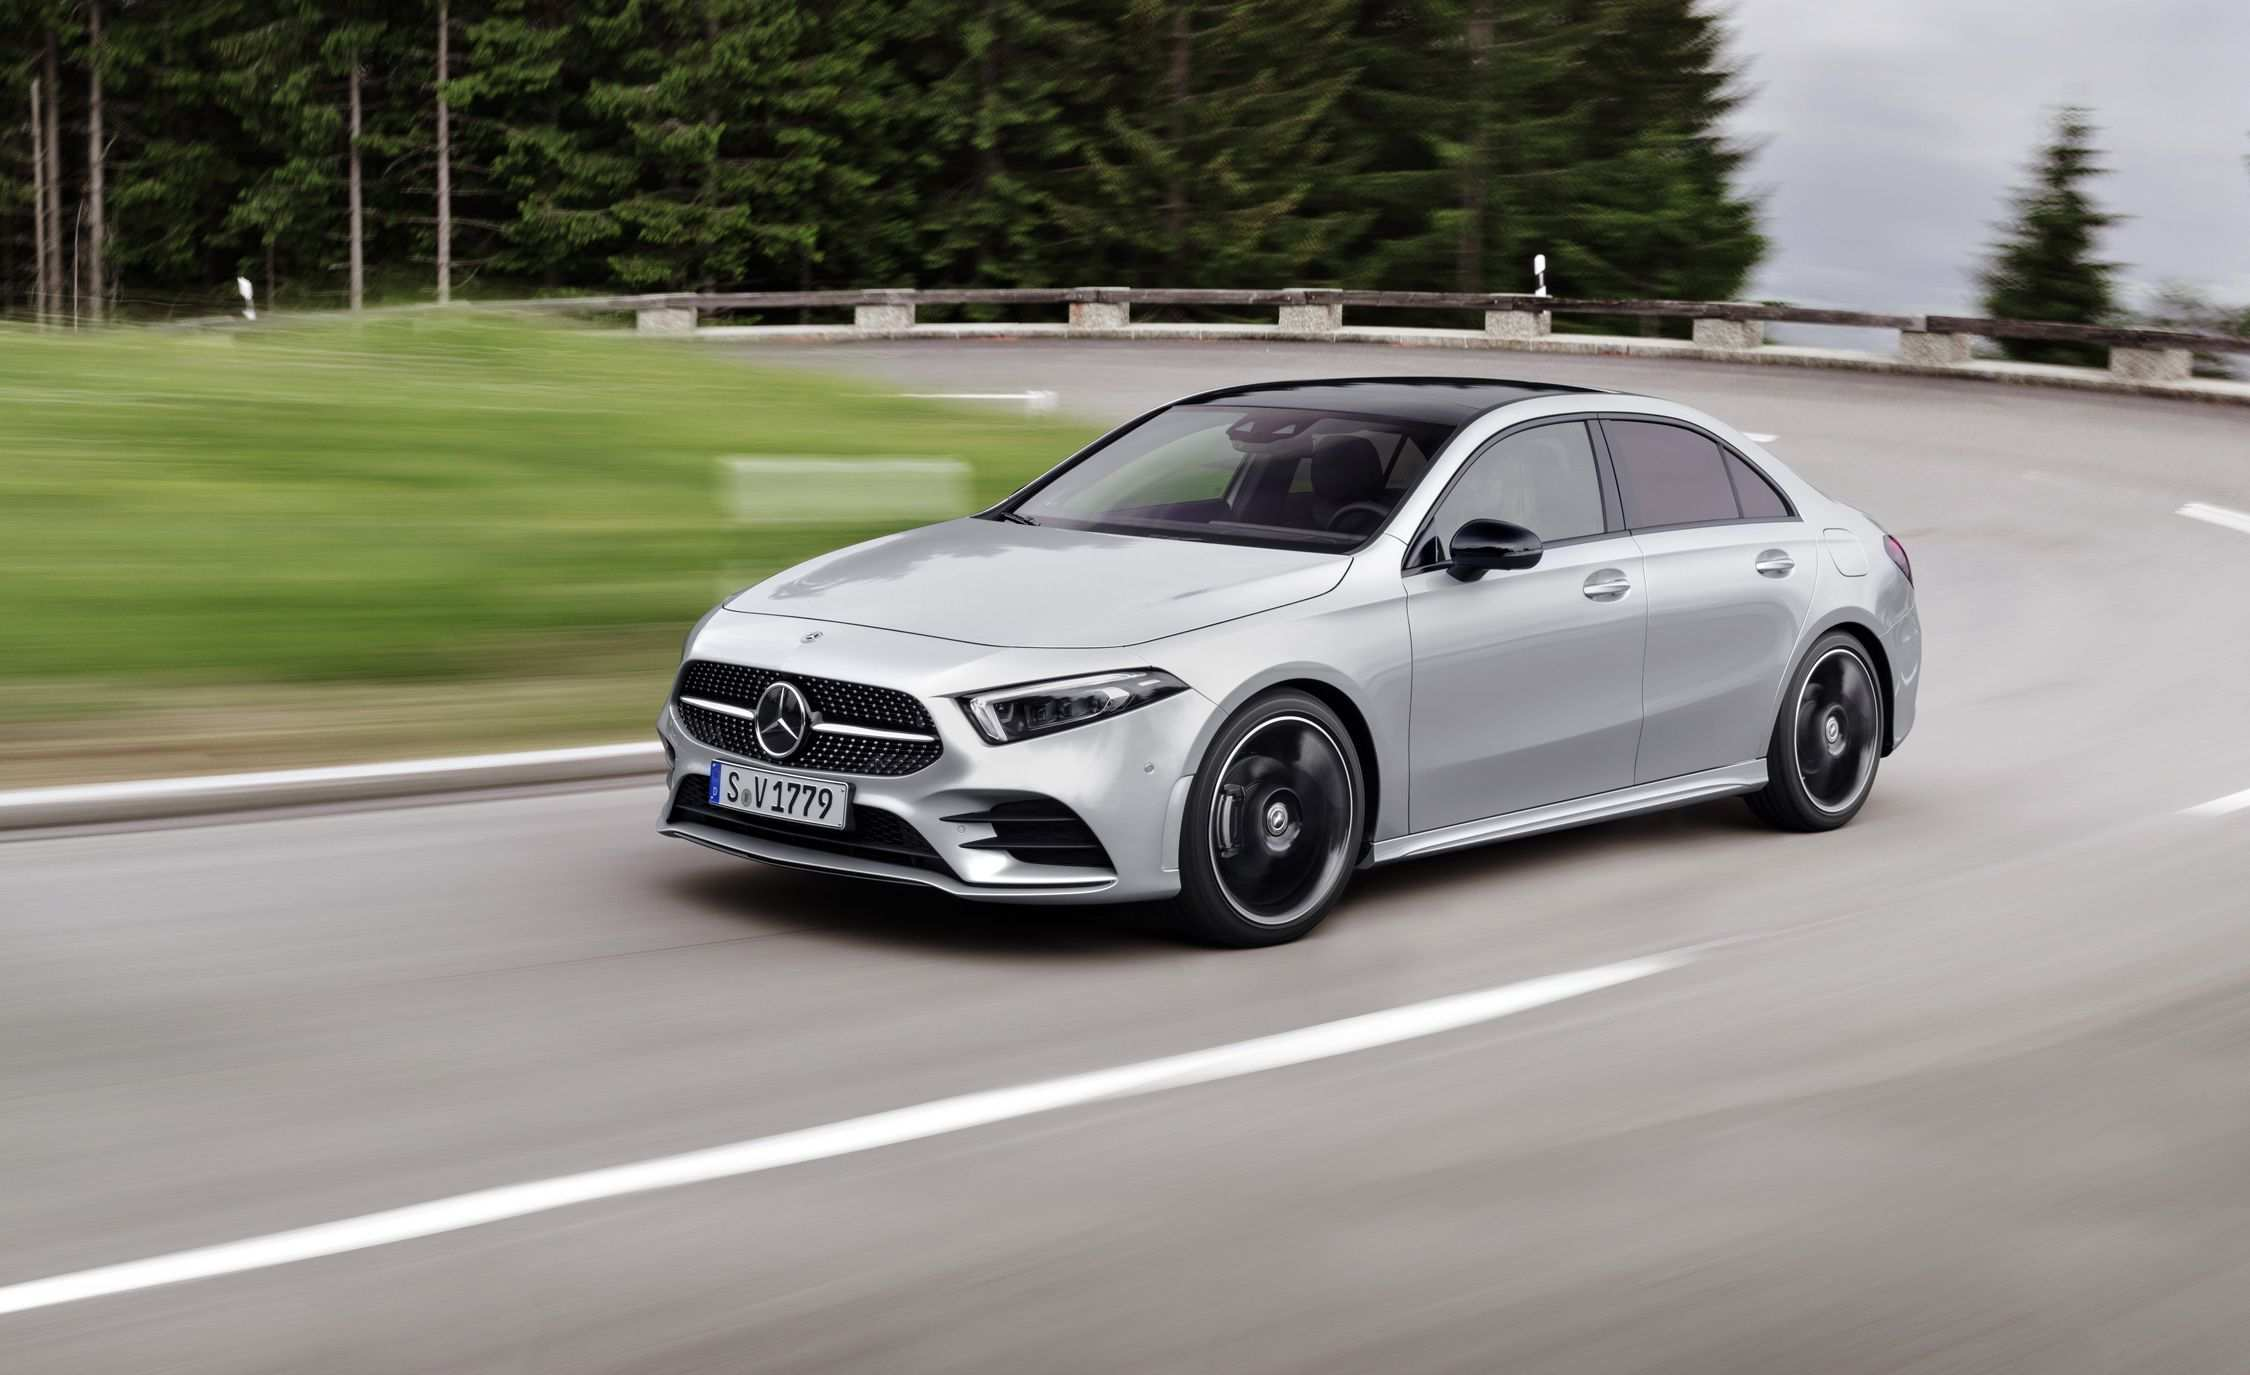 46 Concept of A250 Mercedes 2020 Speed Test for A250 Mercedes 2020